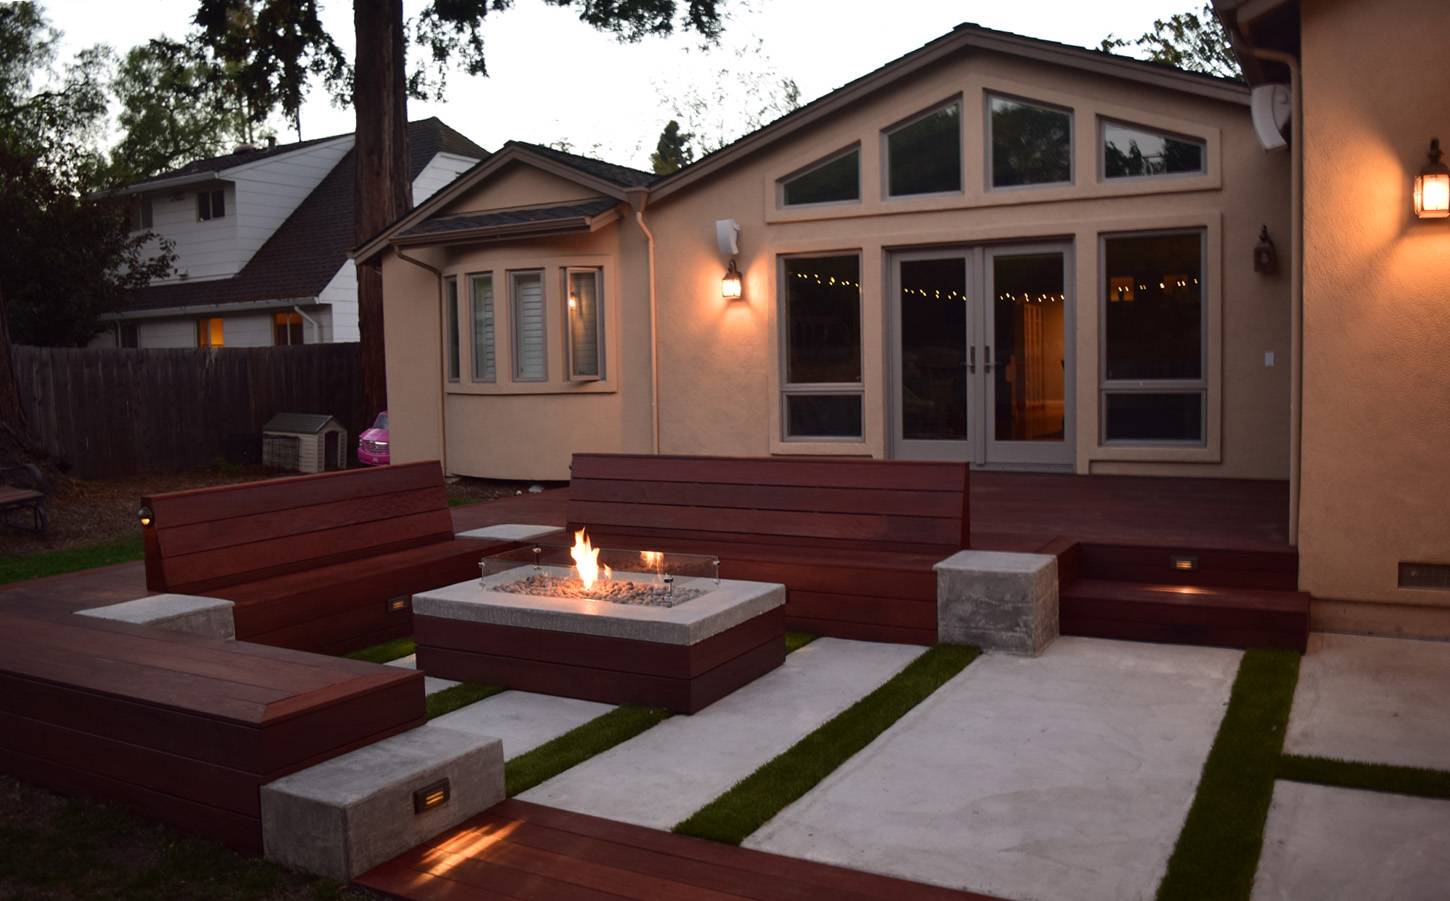 IPE Deck, fire pit, concrete patio